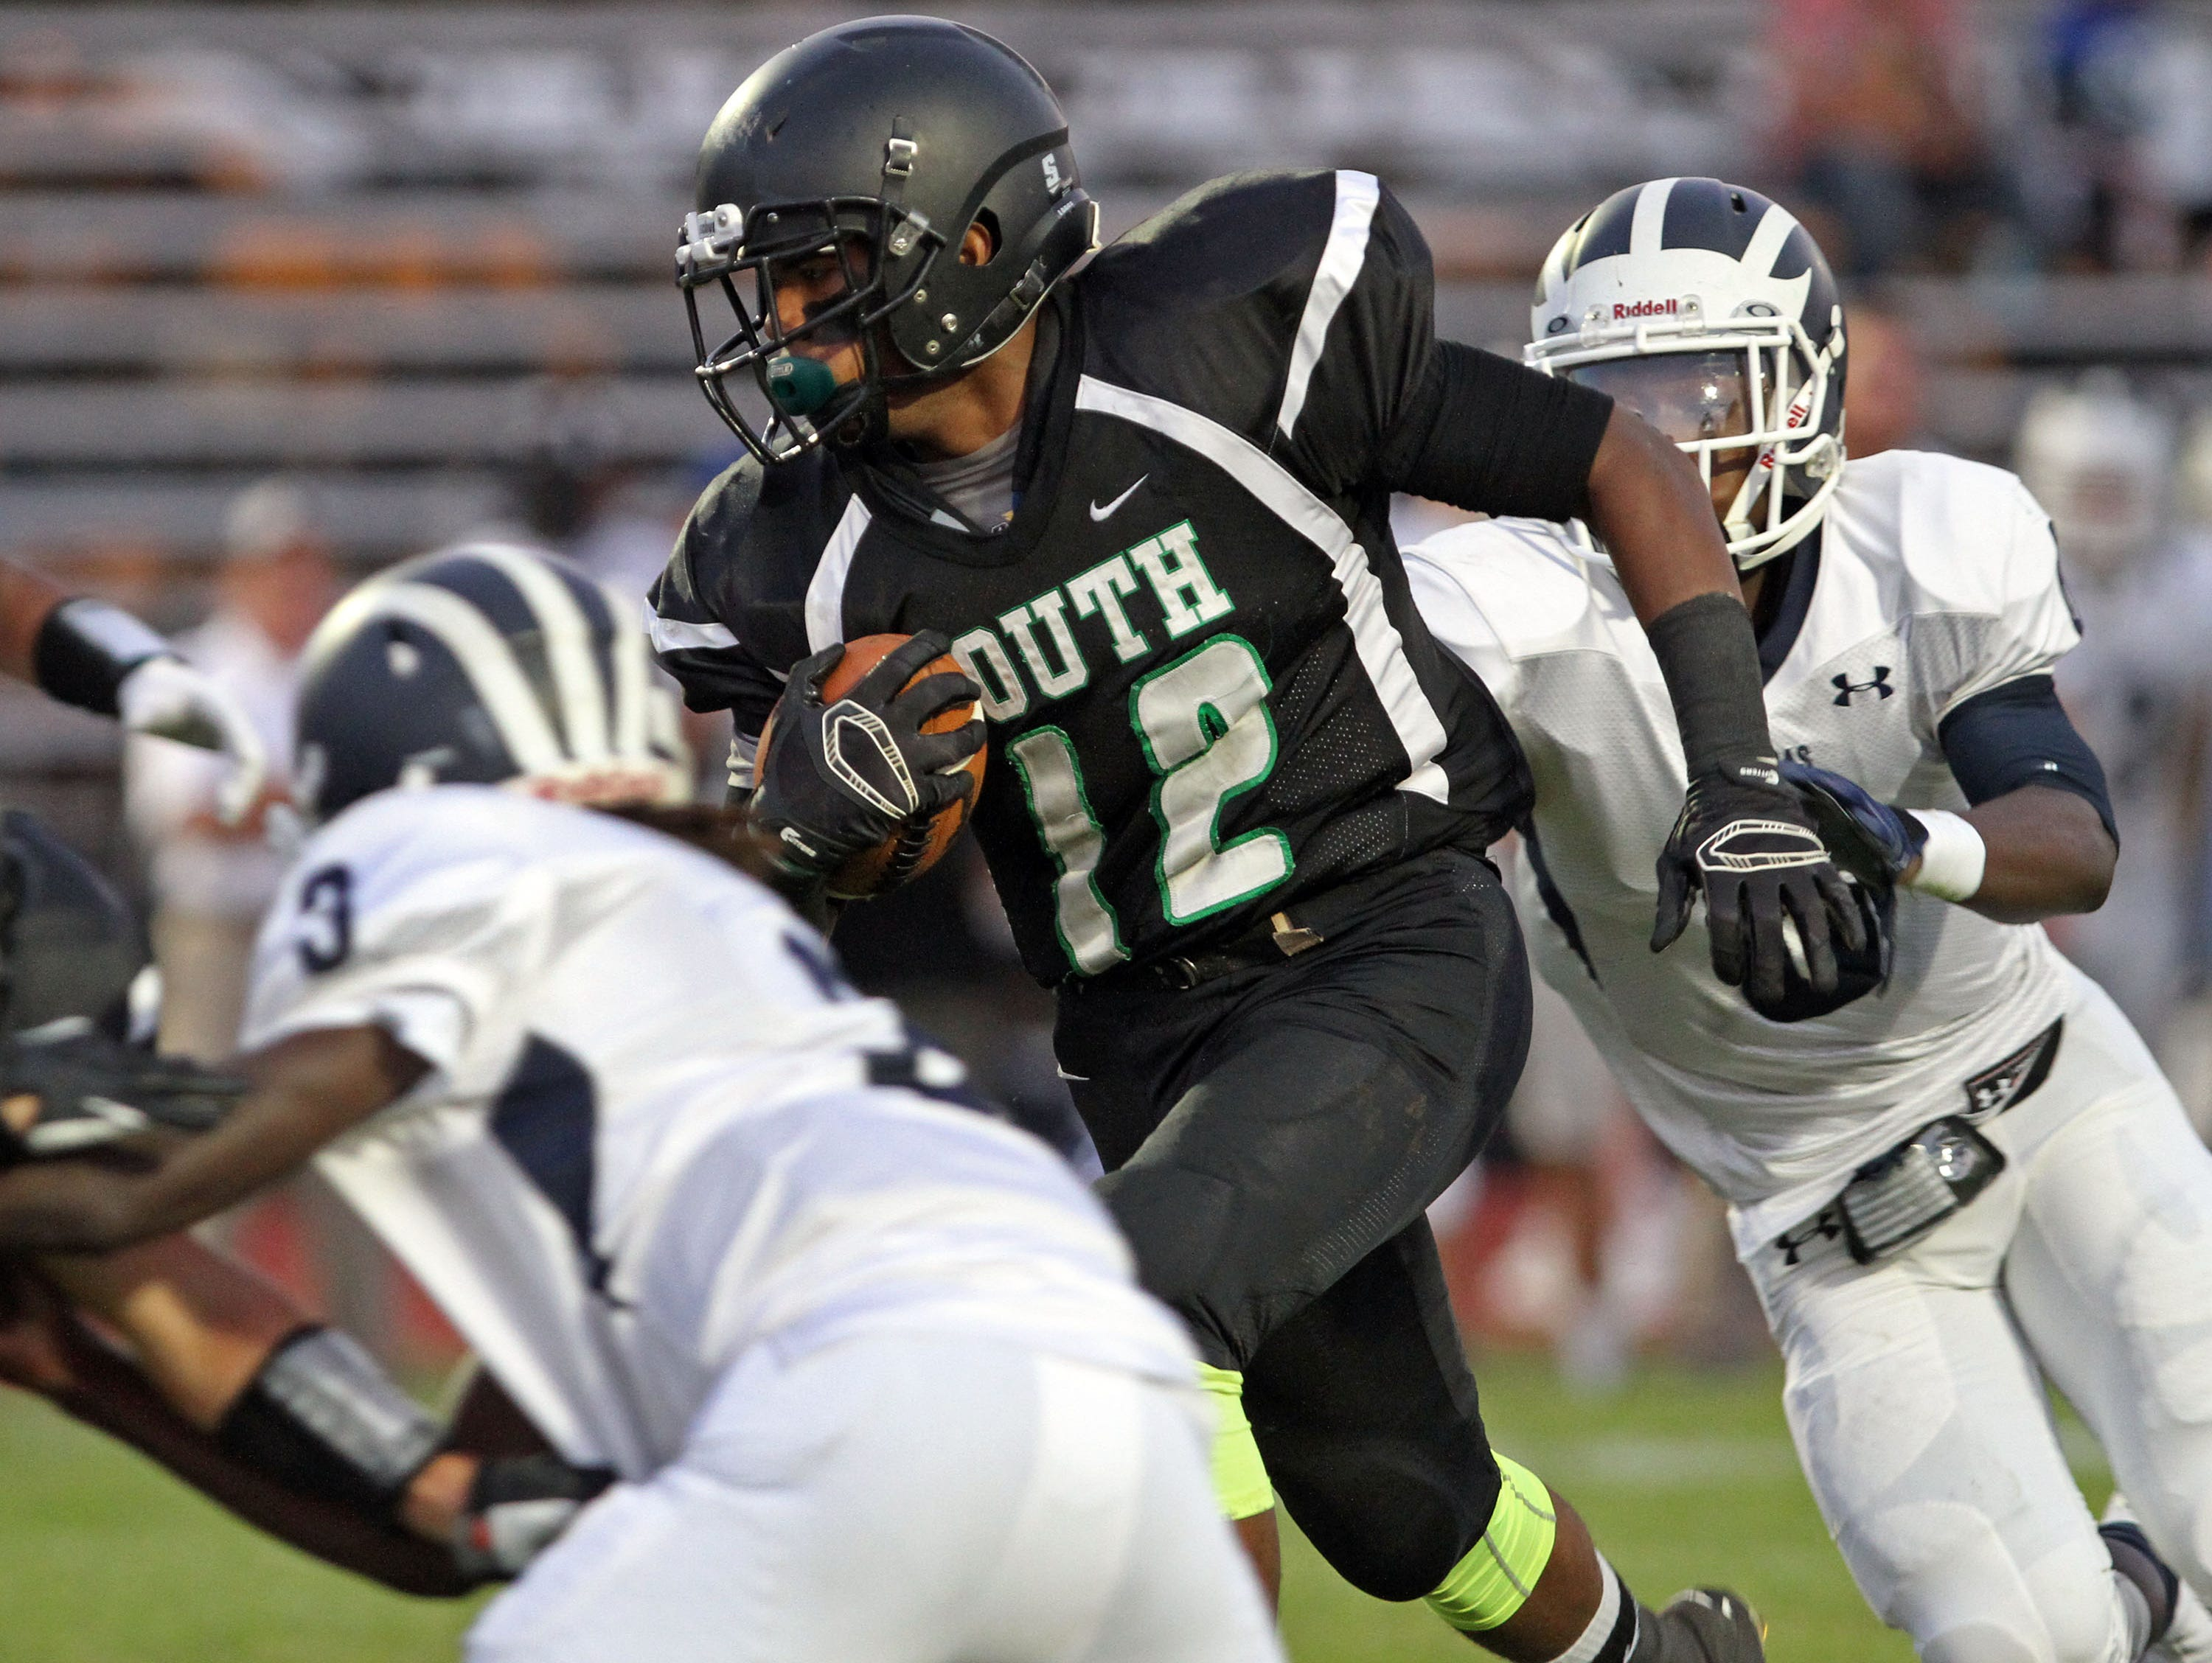 South Plainfield's Jason Lee picks up a first down in football game of New Brunswick at South Plainfield.